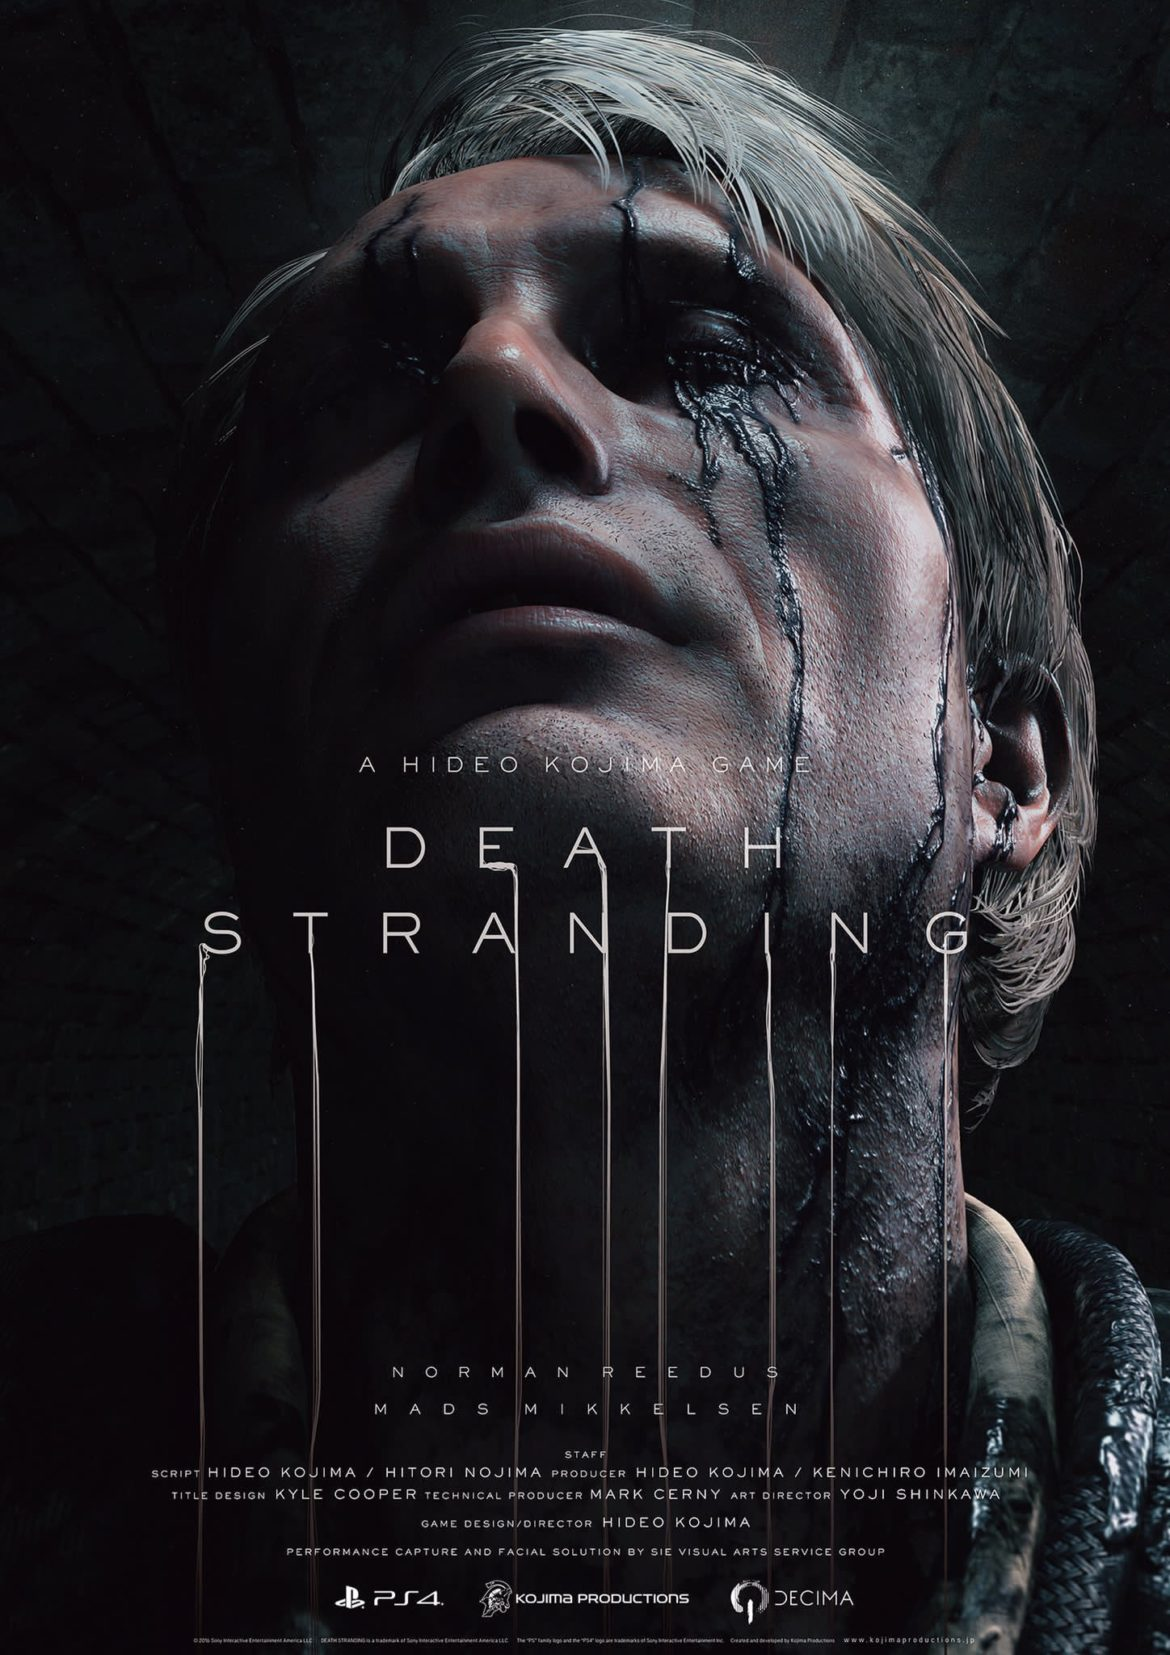 death stranding poster ps4 pro hideo kojima